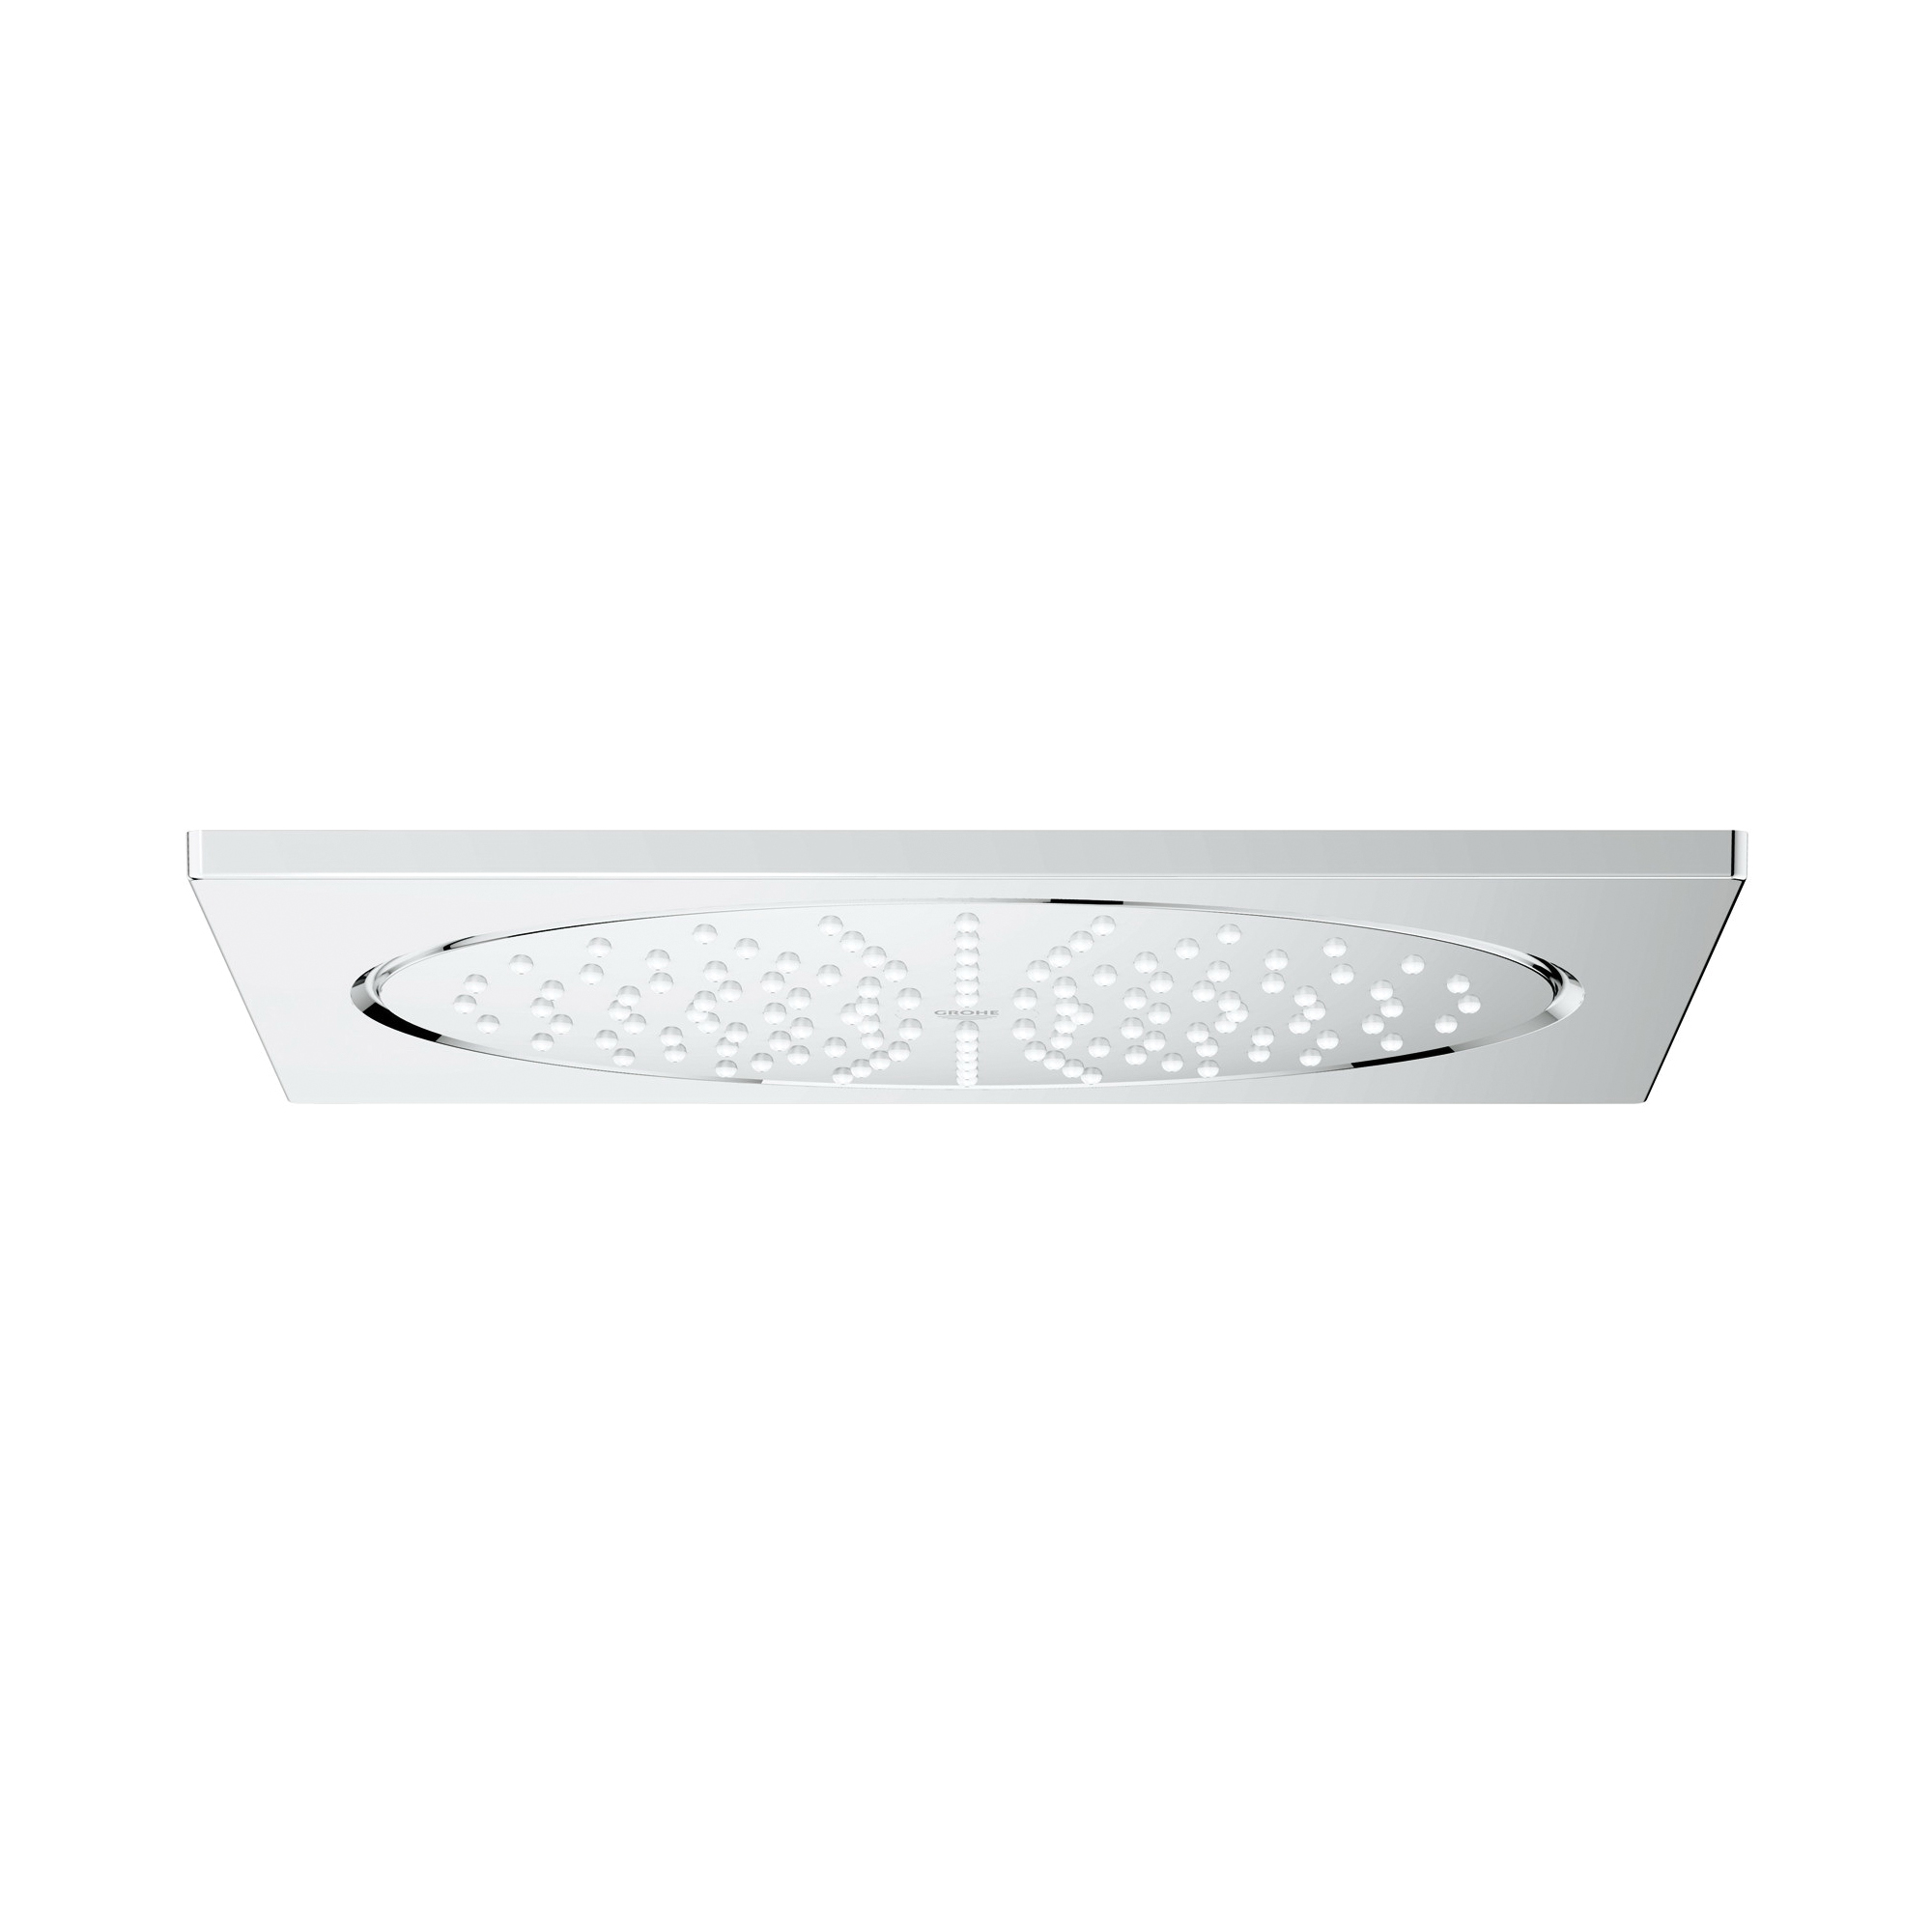 GROHE 27816000 F Series Rainshower® Ceiling Shower Head, 2 gpm, 1 Spray, Ceiling Mount, 10 in Head, Import